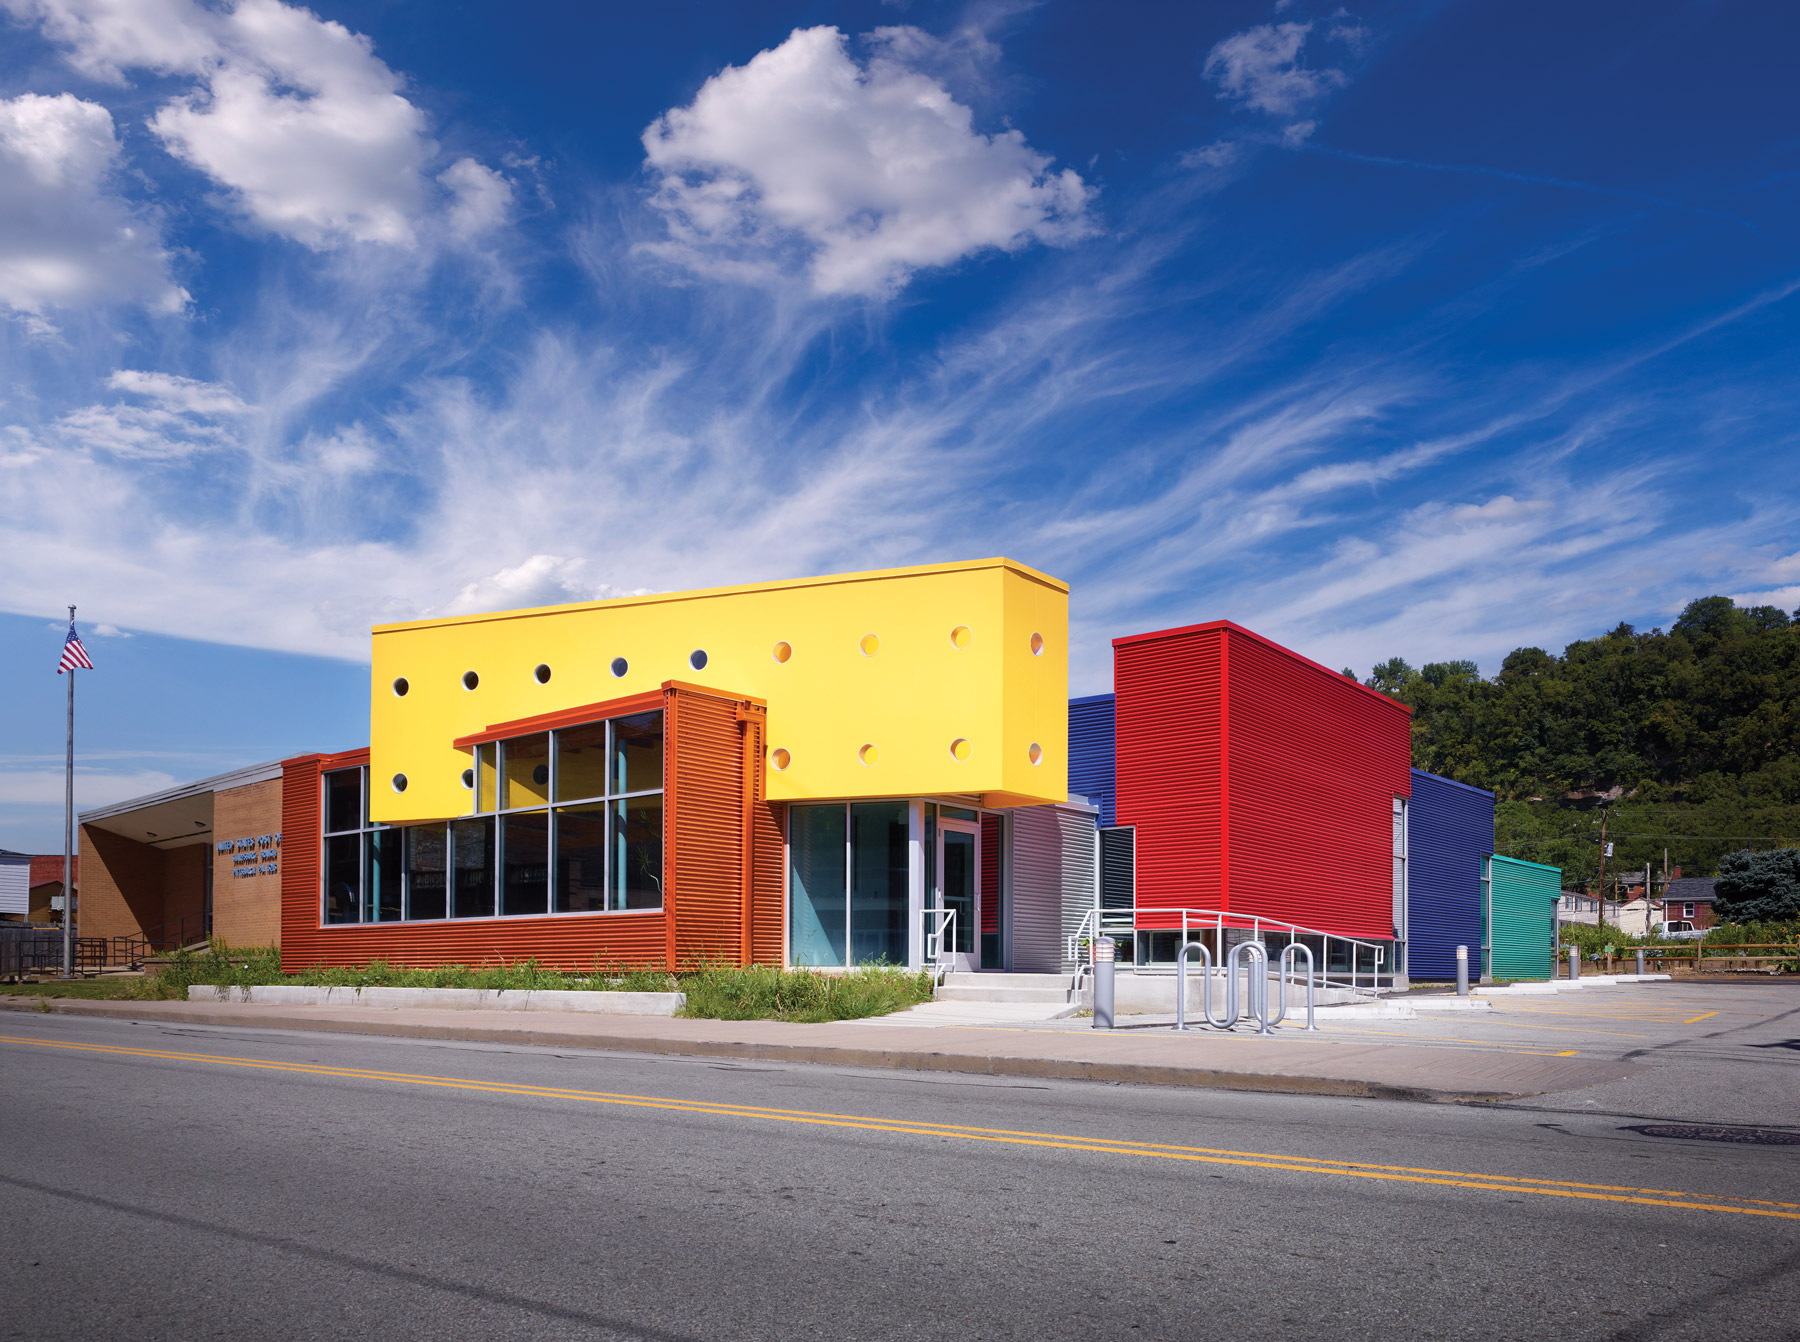 Sharpsburg Library Makes An Impression Thanks To Colorful